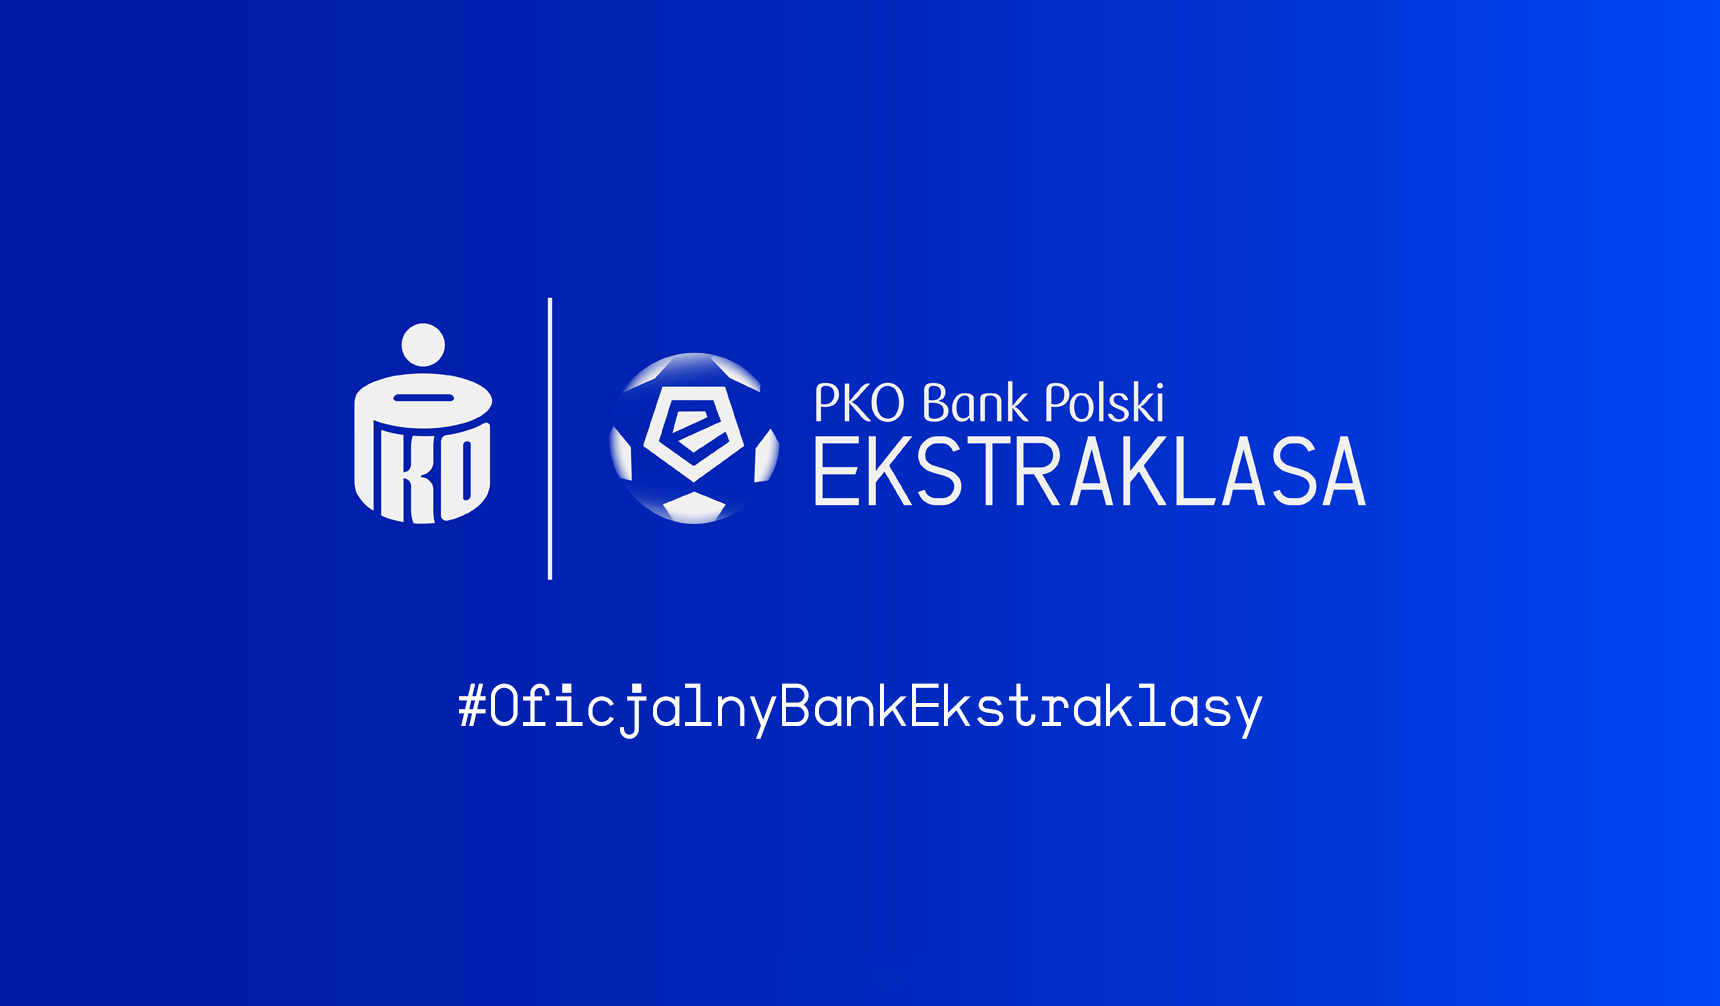 PKO BP Ekstraklasa new logo background